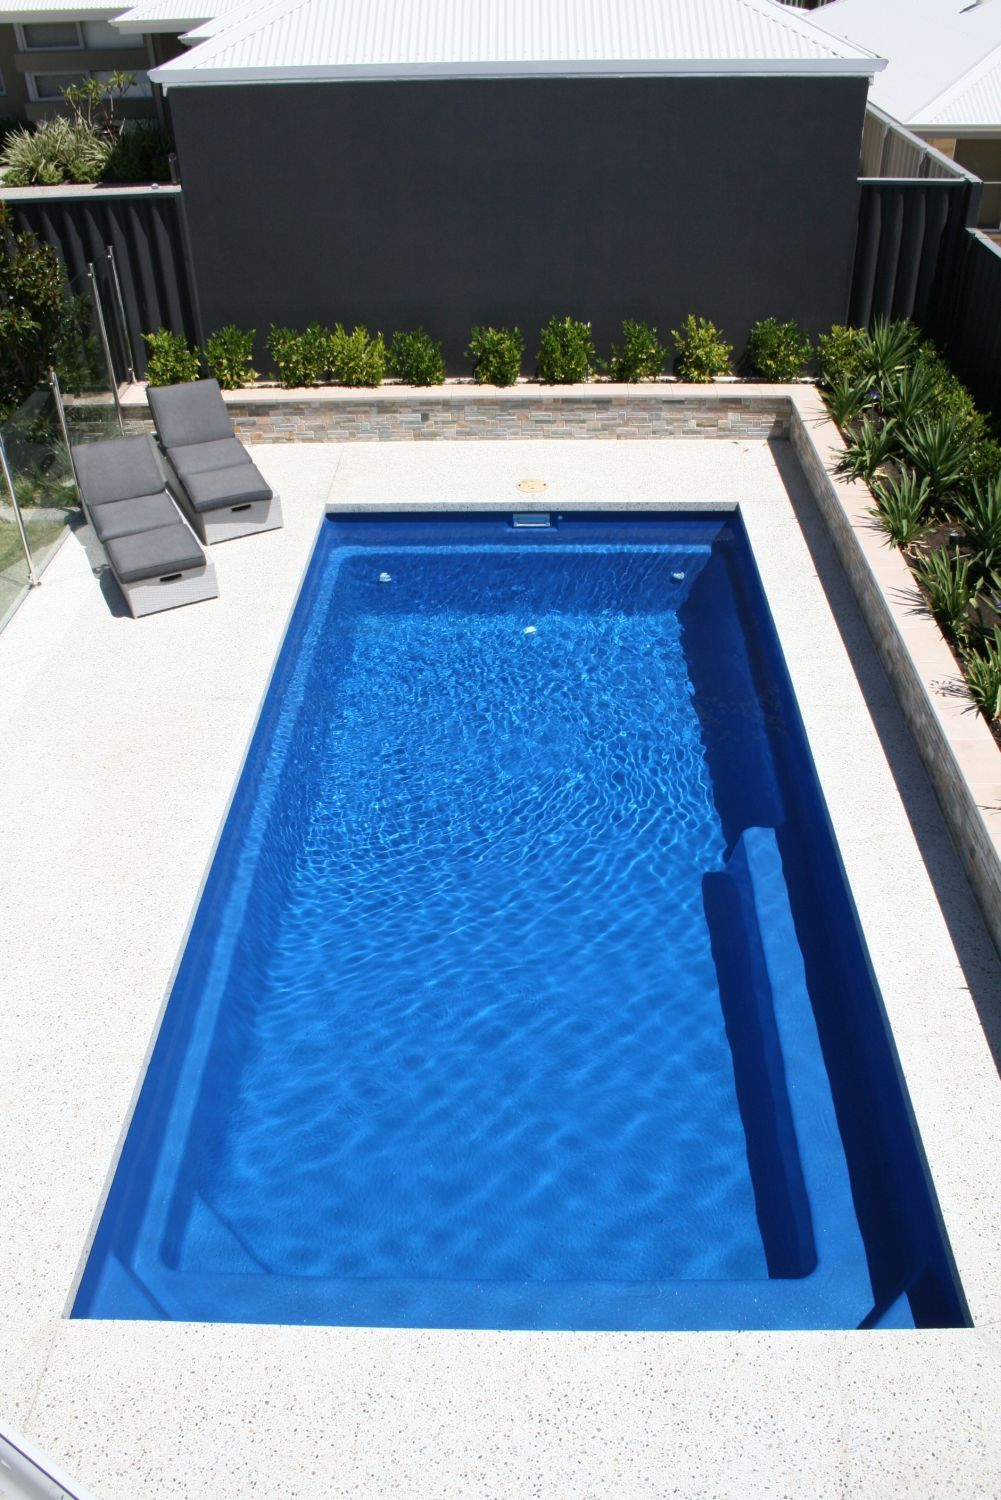 Decorative Concrete Pool Surrounds Options Add Value With